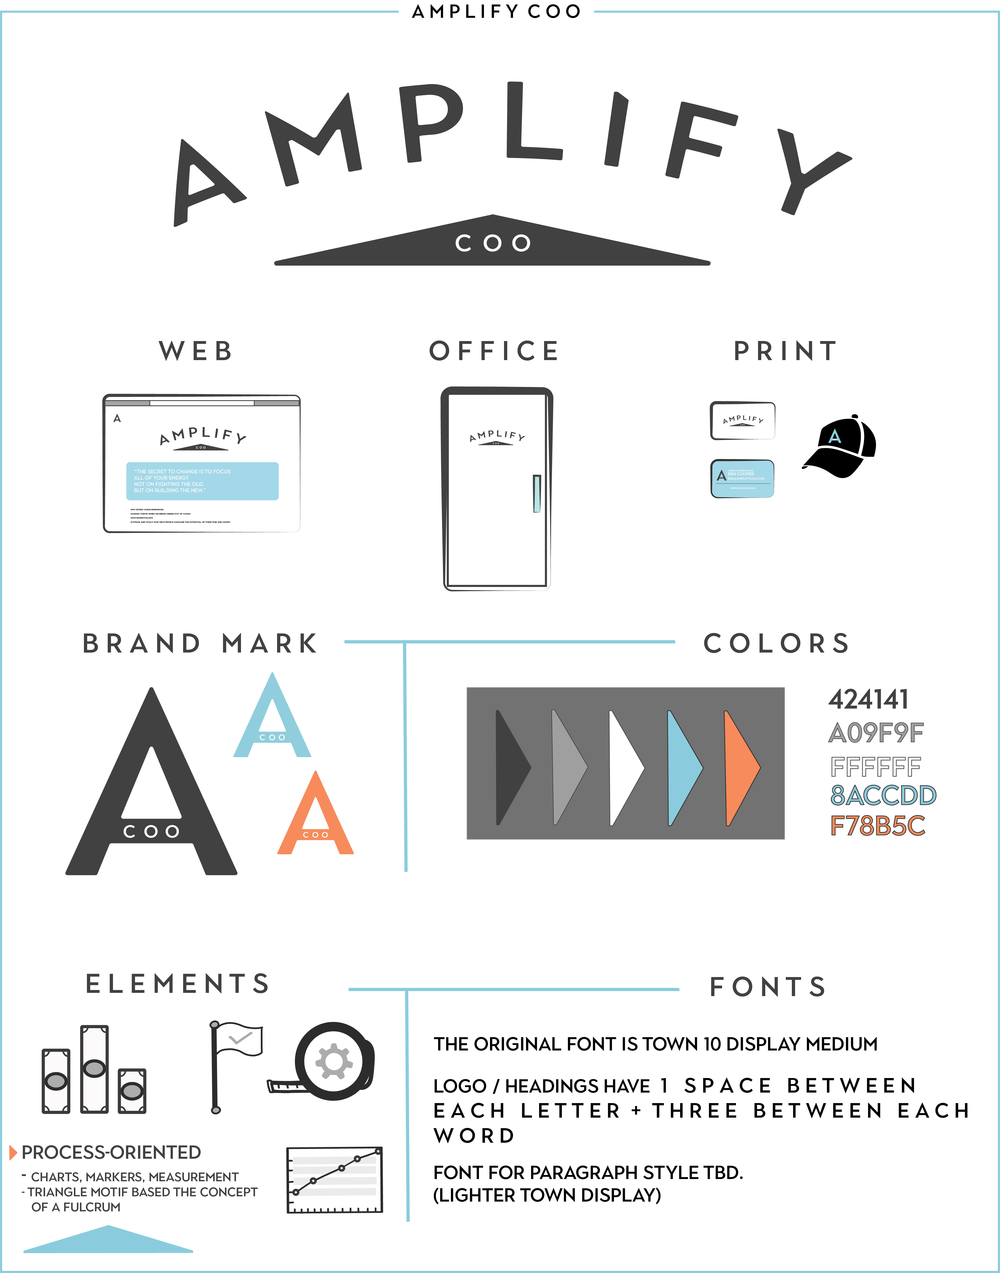 BRANDING: AMPLIFY COO - In Spring 2018, Ben Cooper chose Squillustrate to help rebrand his operations consulting business. From an original set of 9CoreActivities to one simplified mission, Amplify COO clarified its message and found the new look it needed to tell its story. Be sure to check out the streamlined solution they run over at www.amplifycoo.com.Curious how the project went? Read all about it here on our blog!